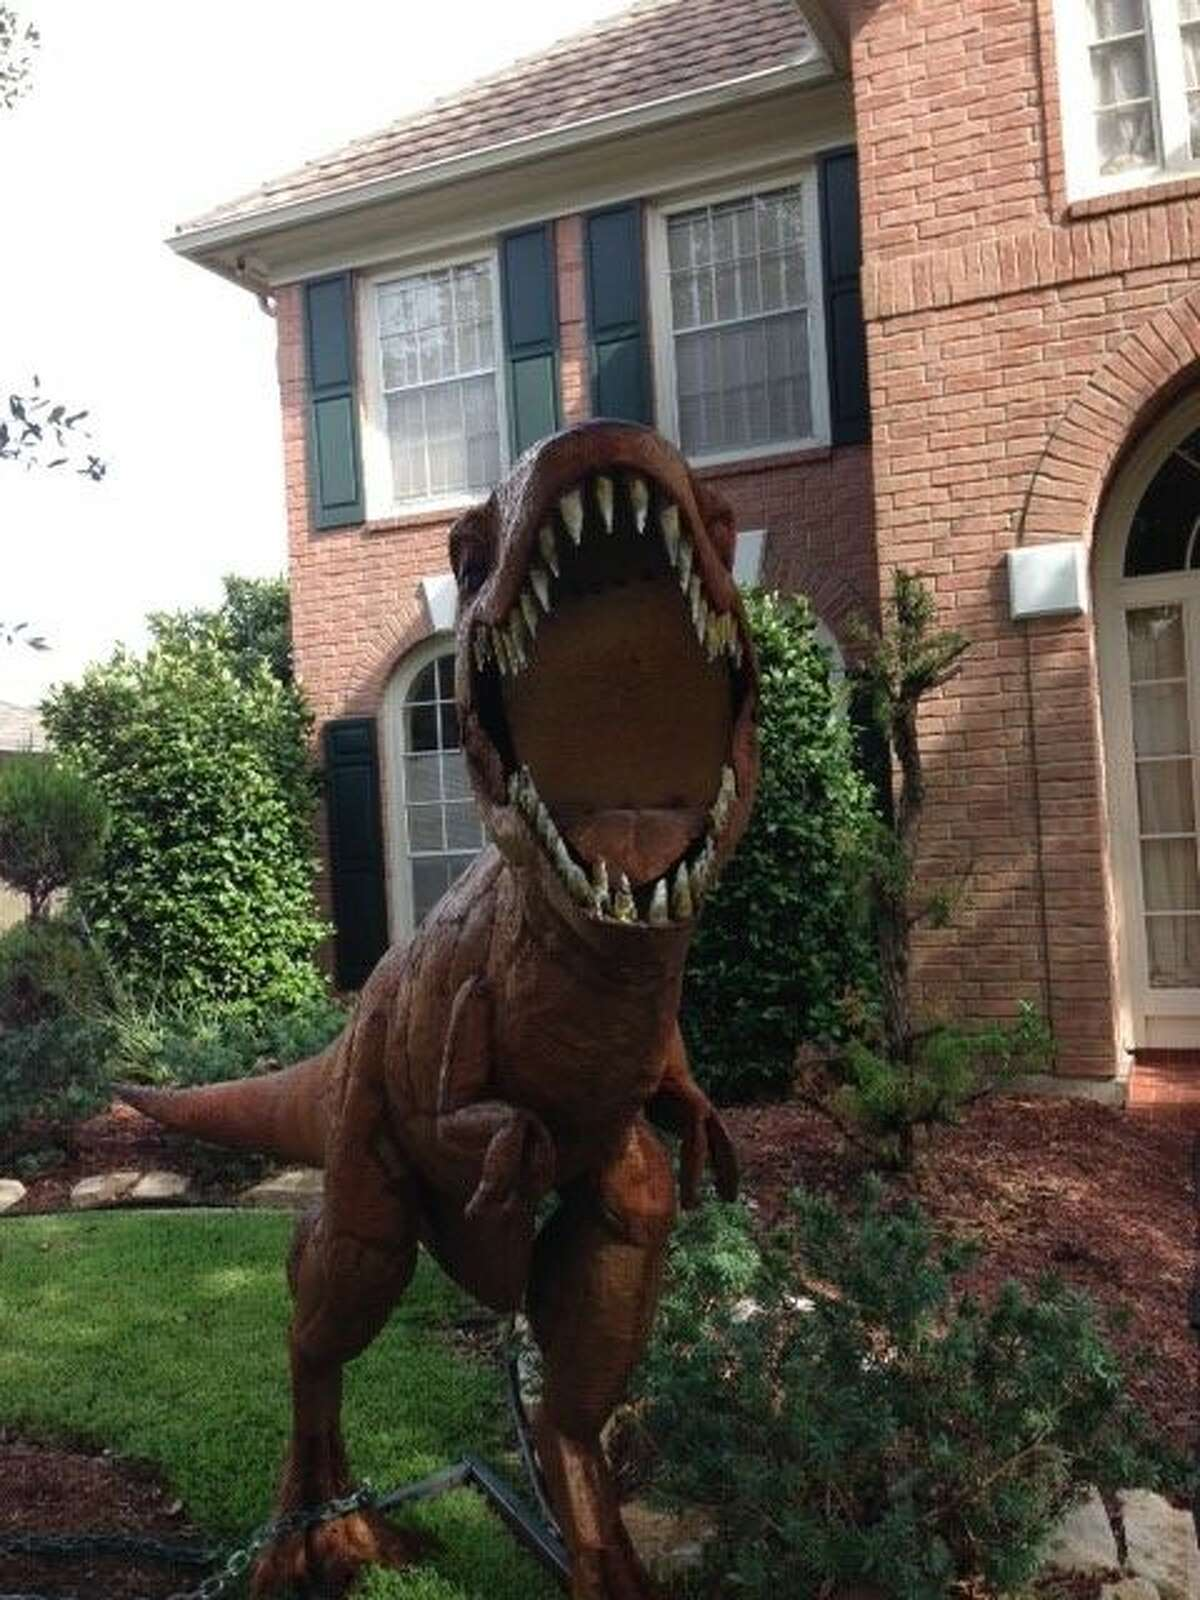 A Sugar Land woman, Nancy Hentschel, who has been told to remove two hulking dinosaur replicas from her front yard said the fearsome figures will go.